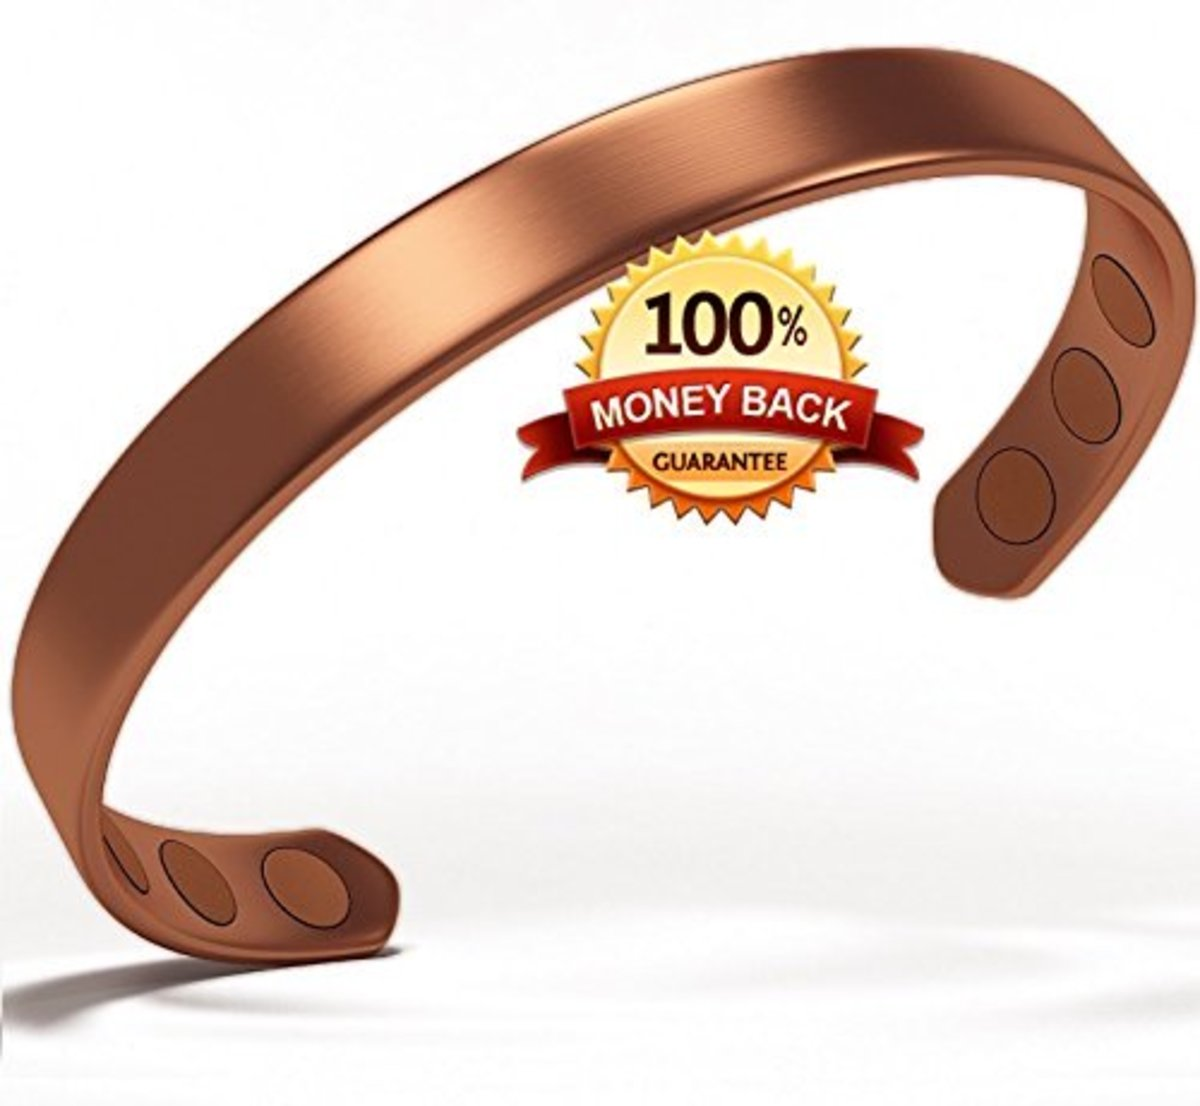 Many people swear by the benefits received from the use of copper bracelets.